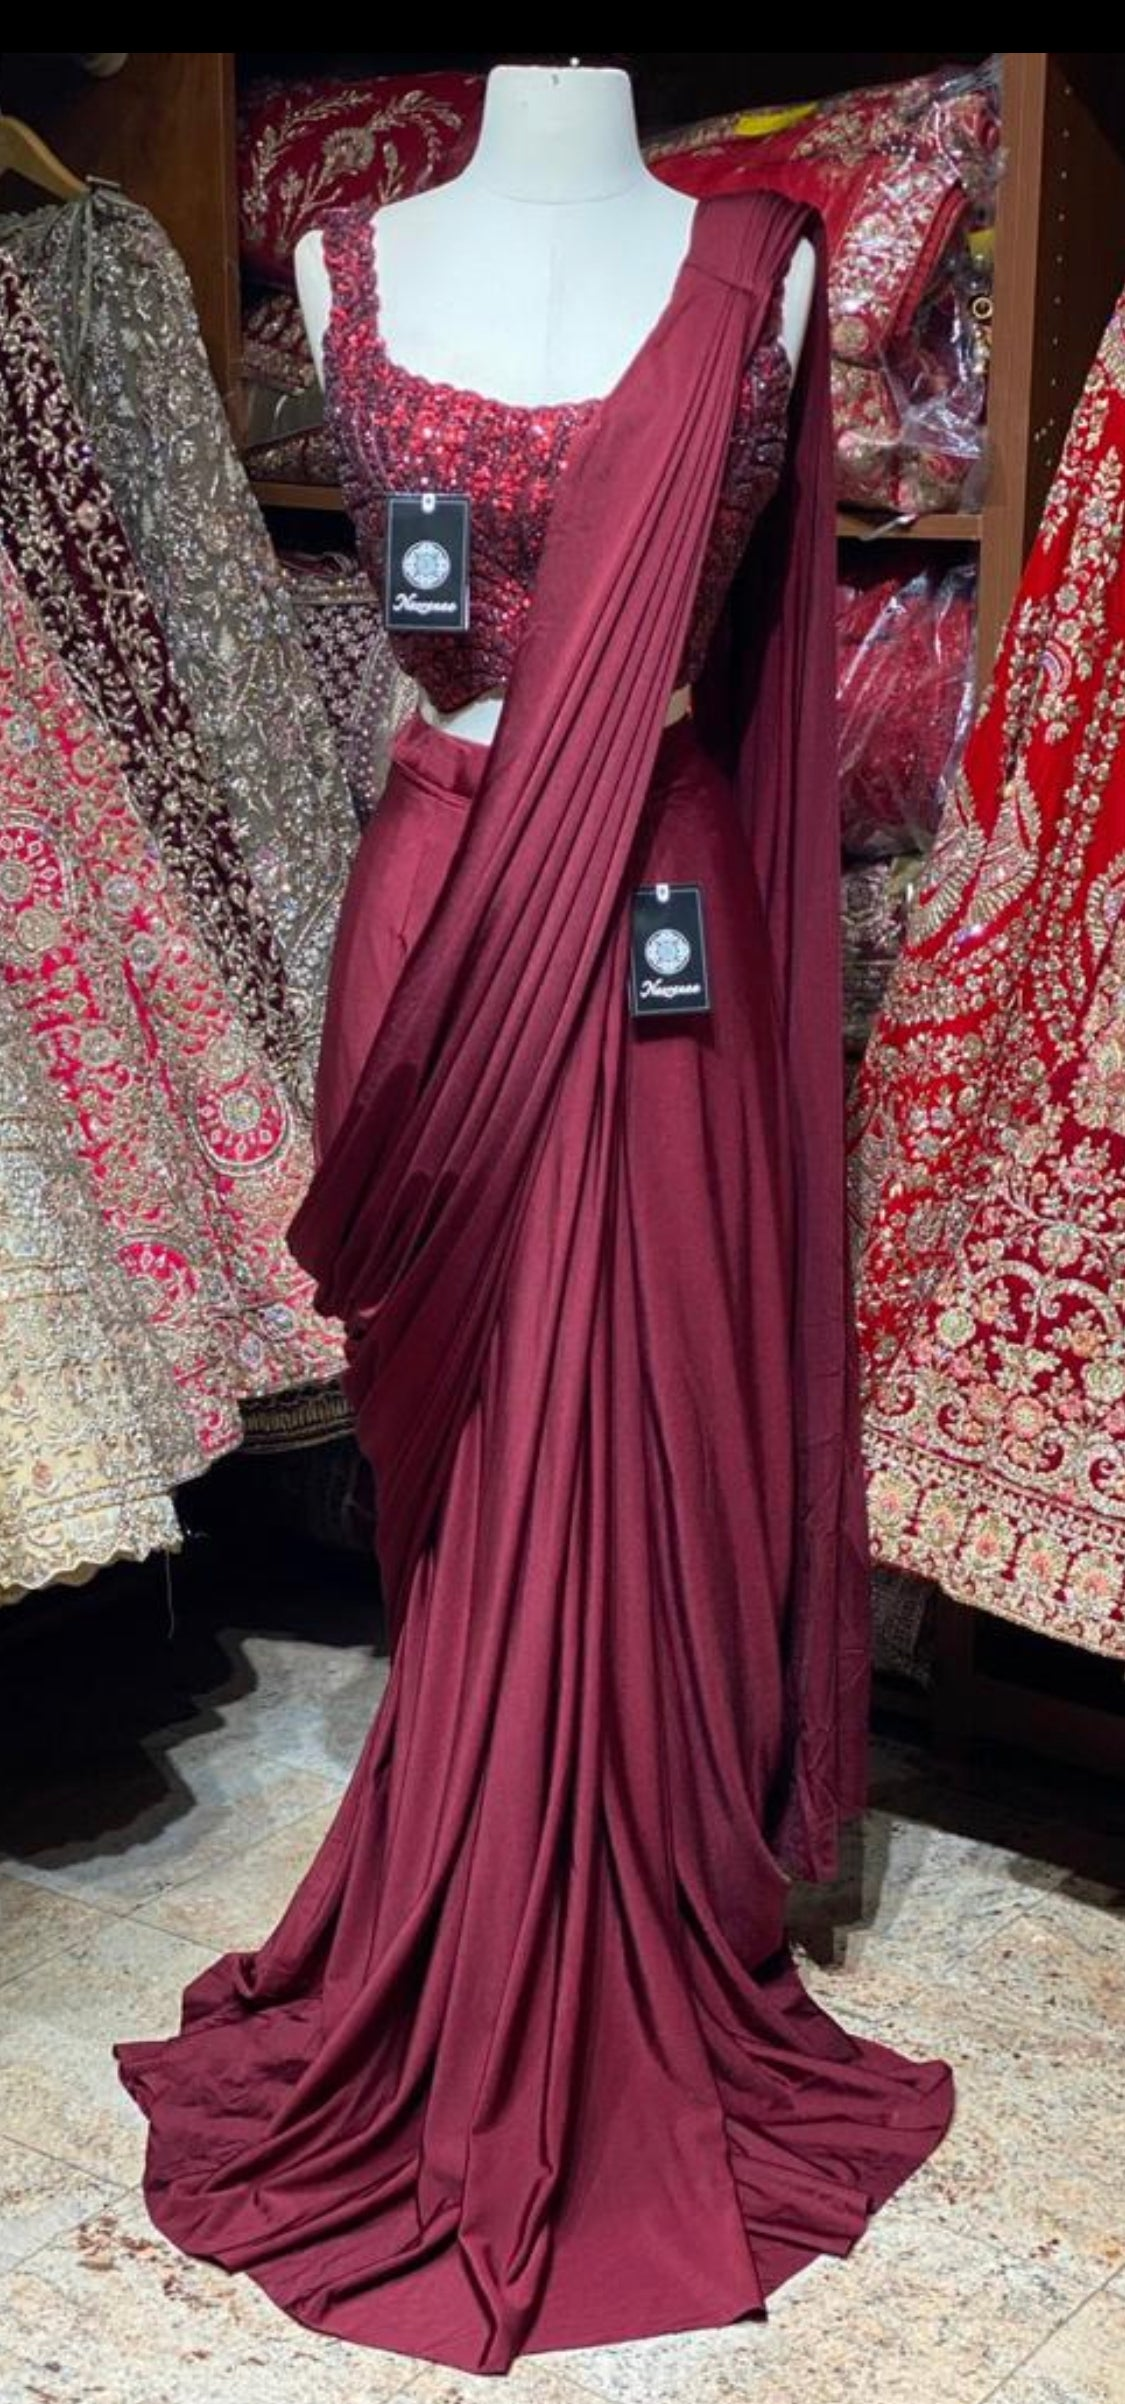 Wine Red Pre-Stitched Saree W/ Readymade Blouse PSS-21